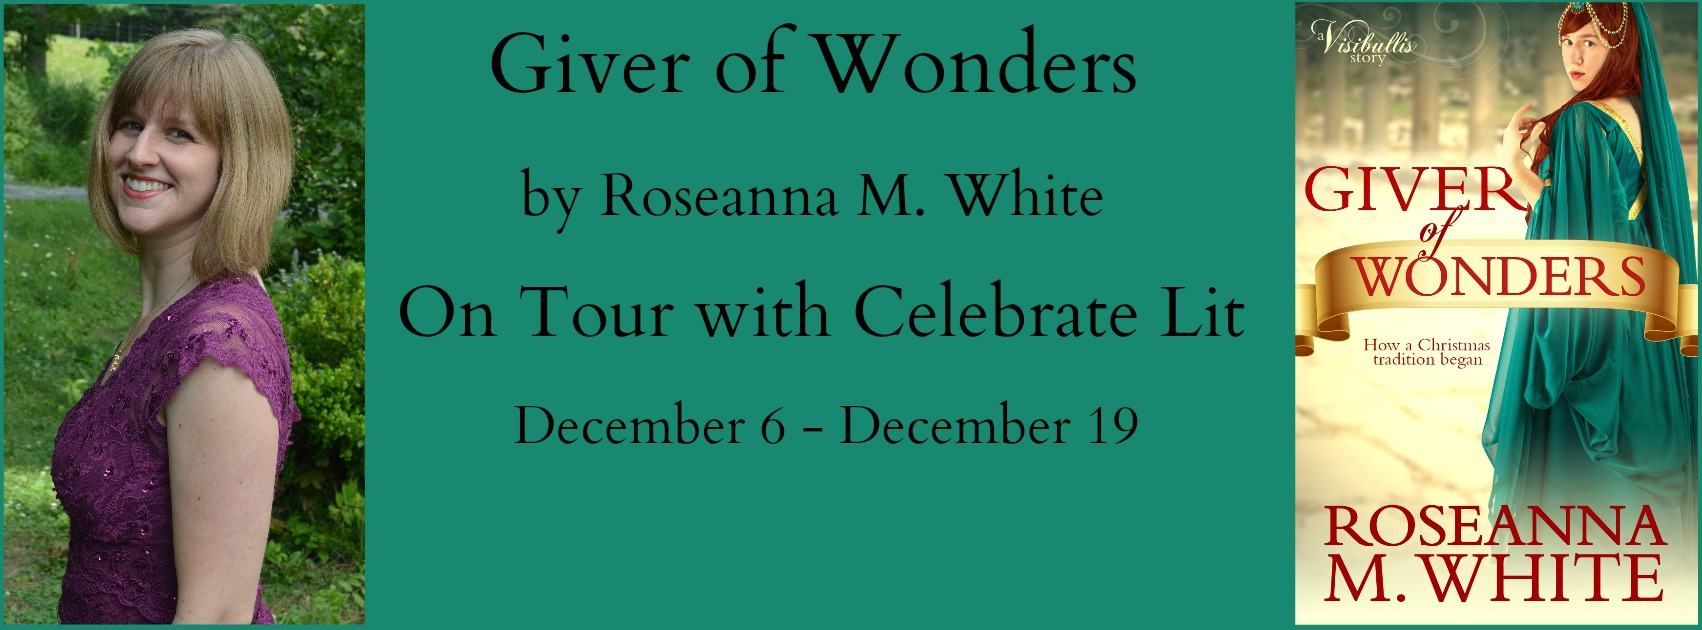 giver-of-wonders-banner